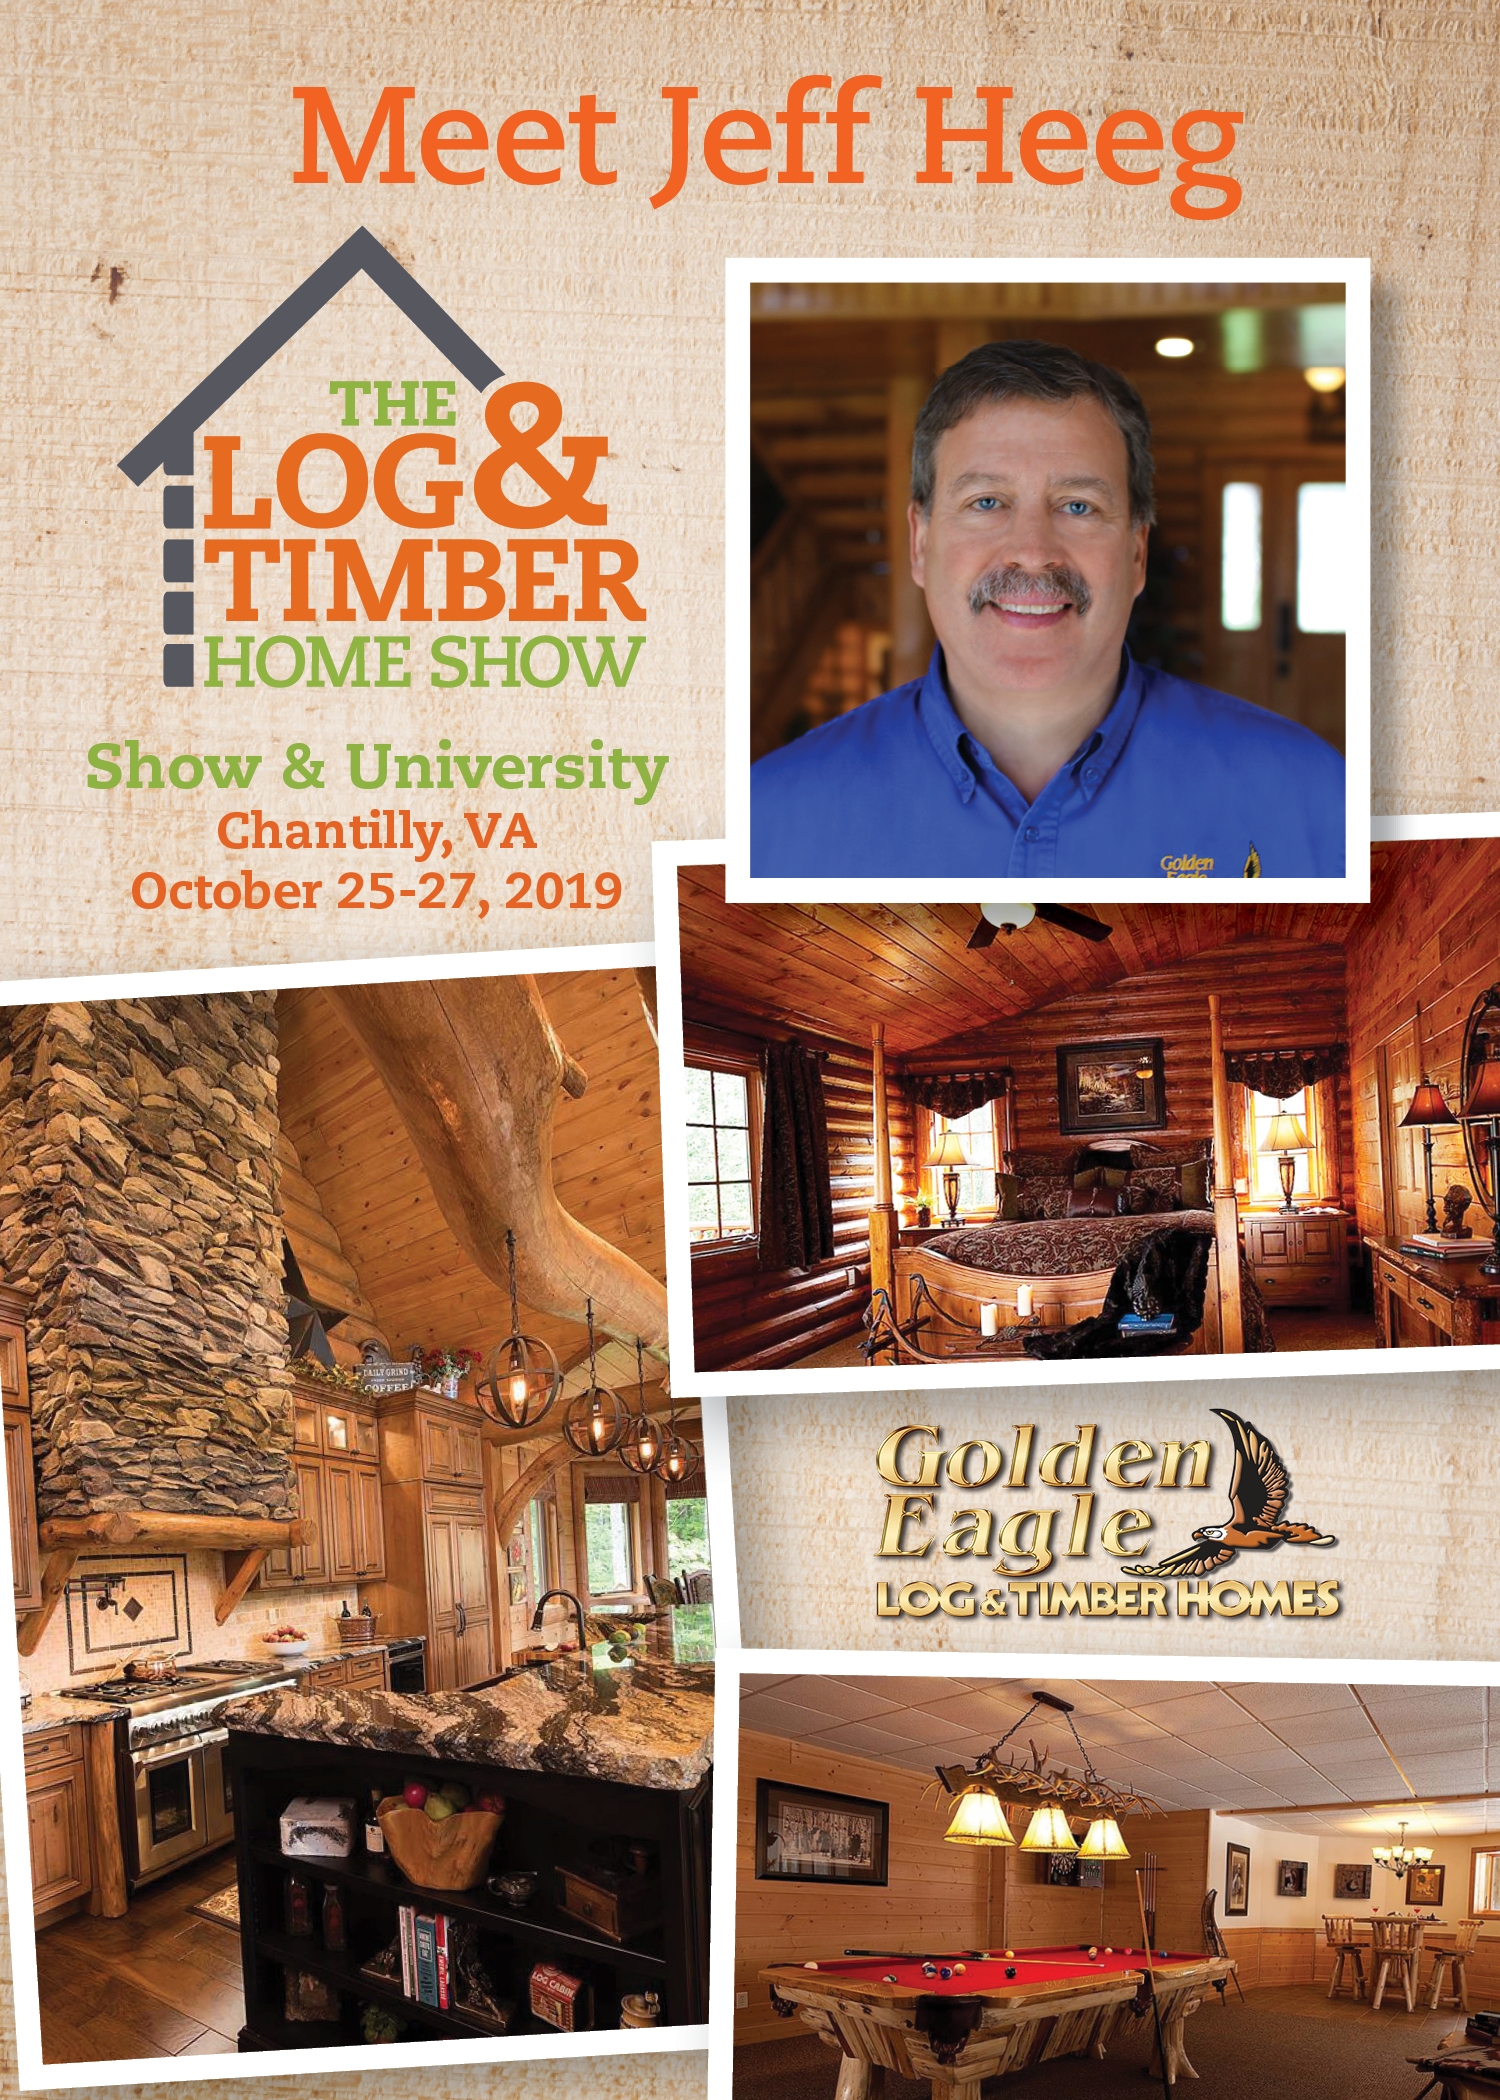 Chantilly, VA | Golden Eagle Log & Timber Homes | Workshop | October 25-27, 2019 | Log & Timber Home Show